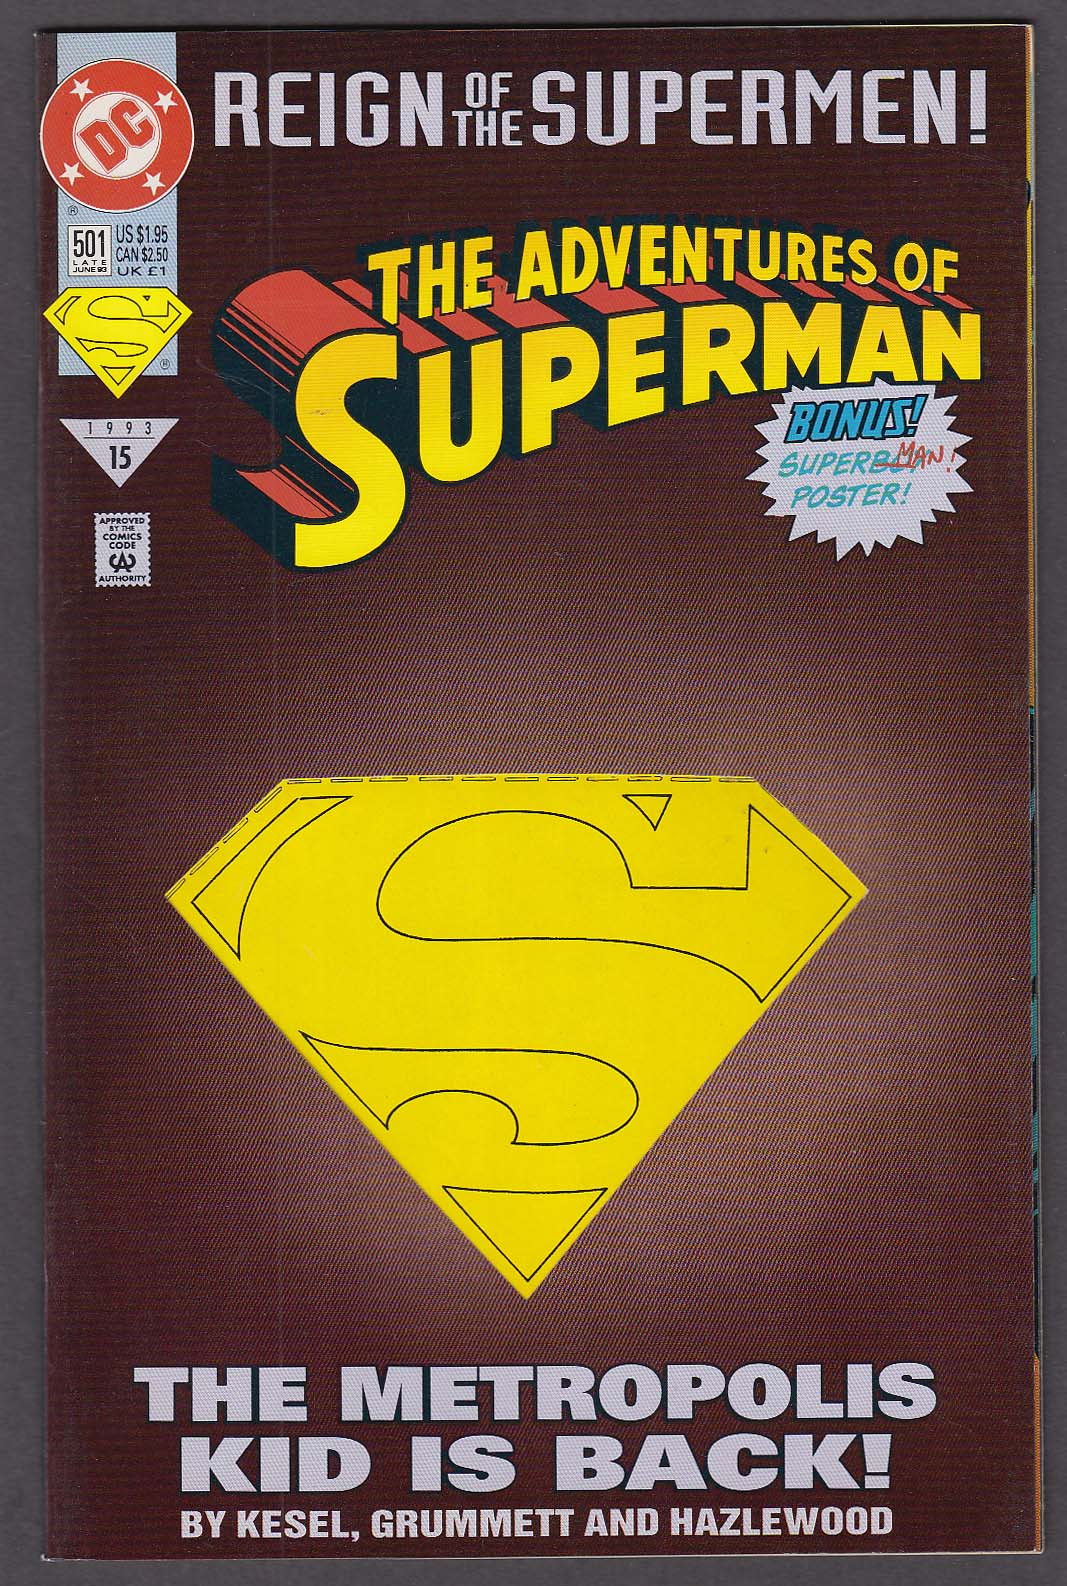 ADVENTURES of SUPERMAN #501 DC comic book 6 1993 Reign of the Supermen #15